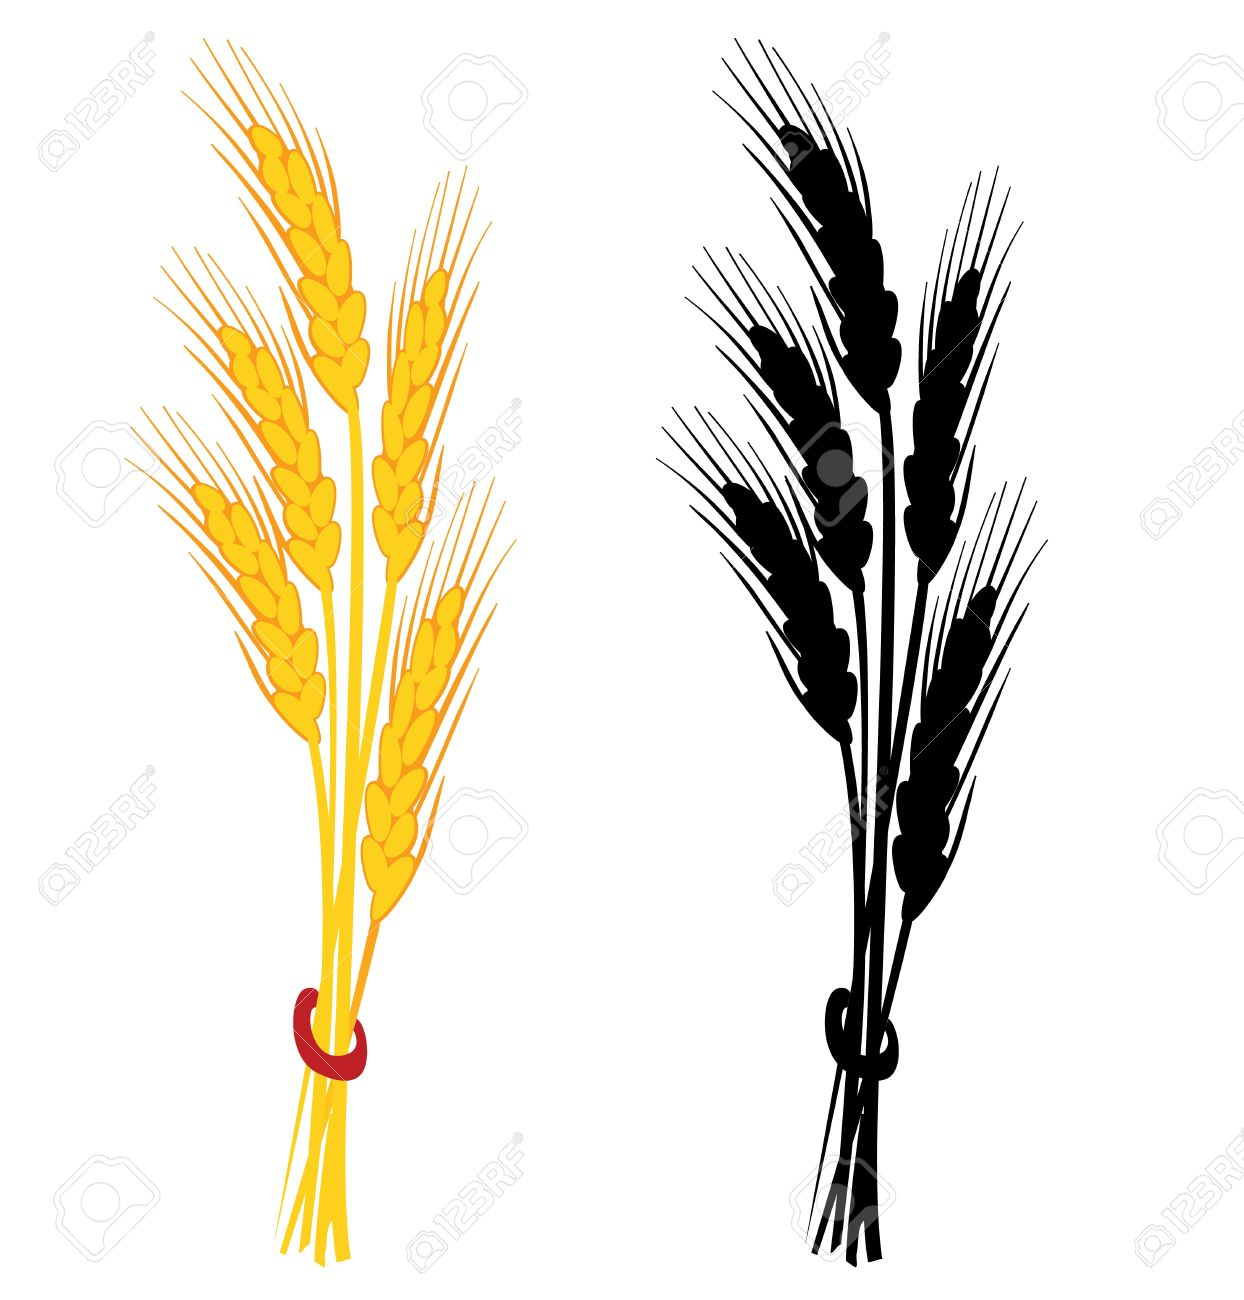 Wheat Ears Clip Art.